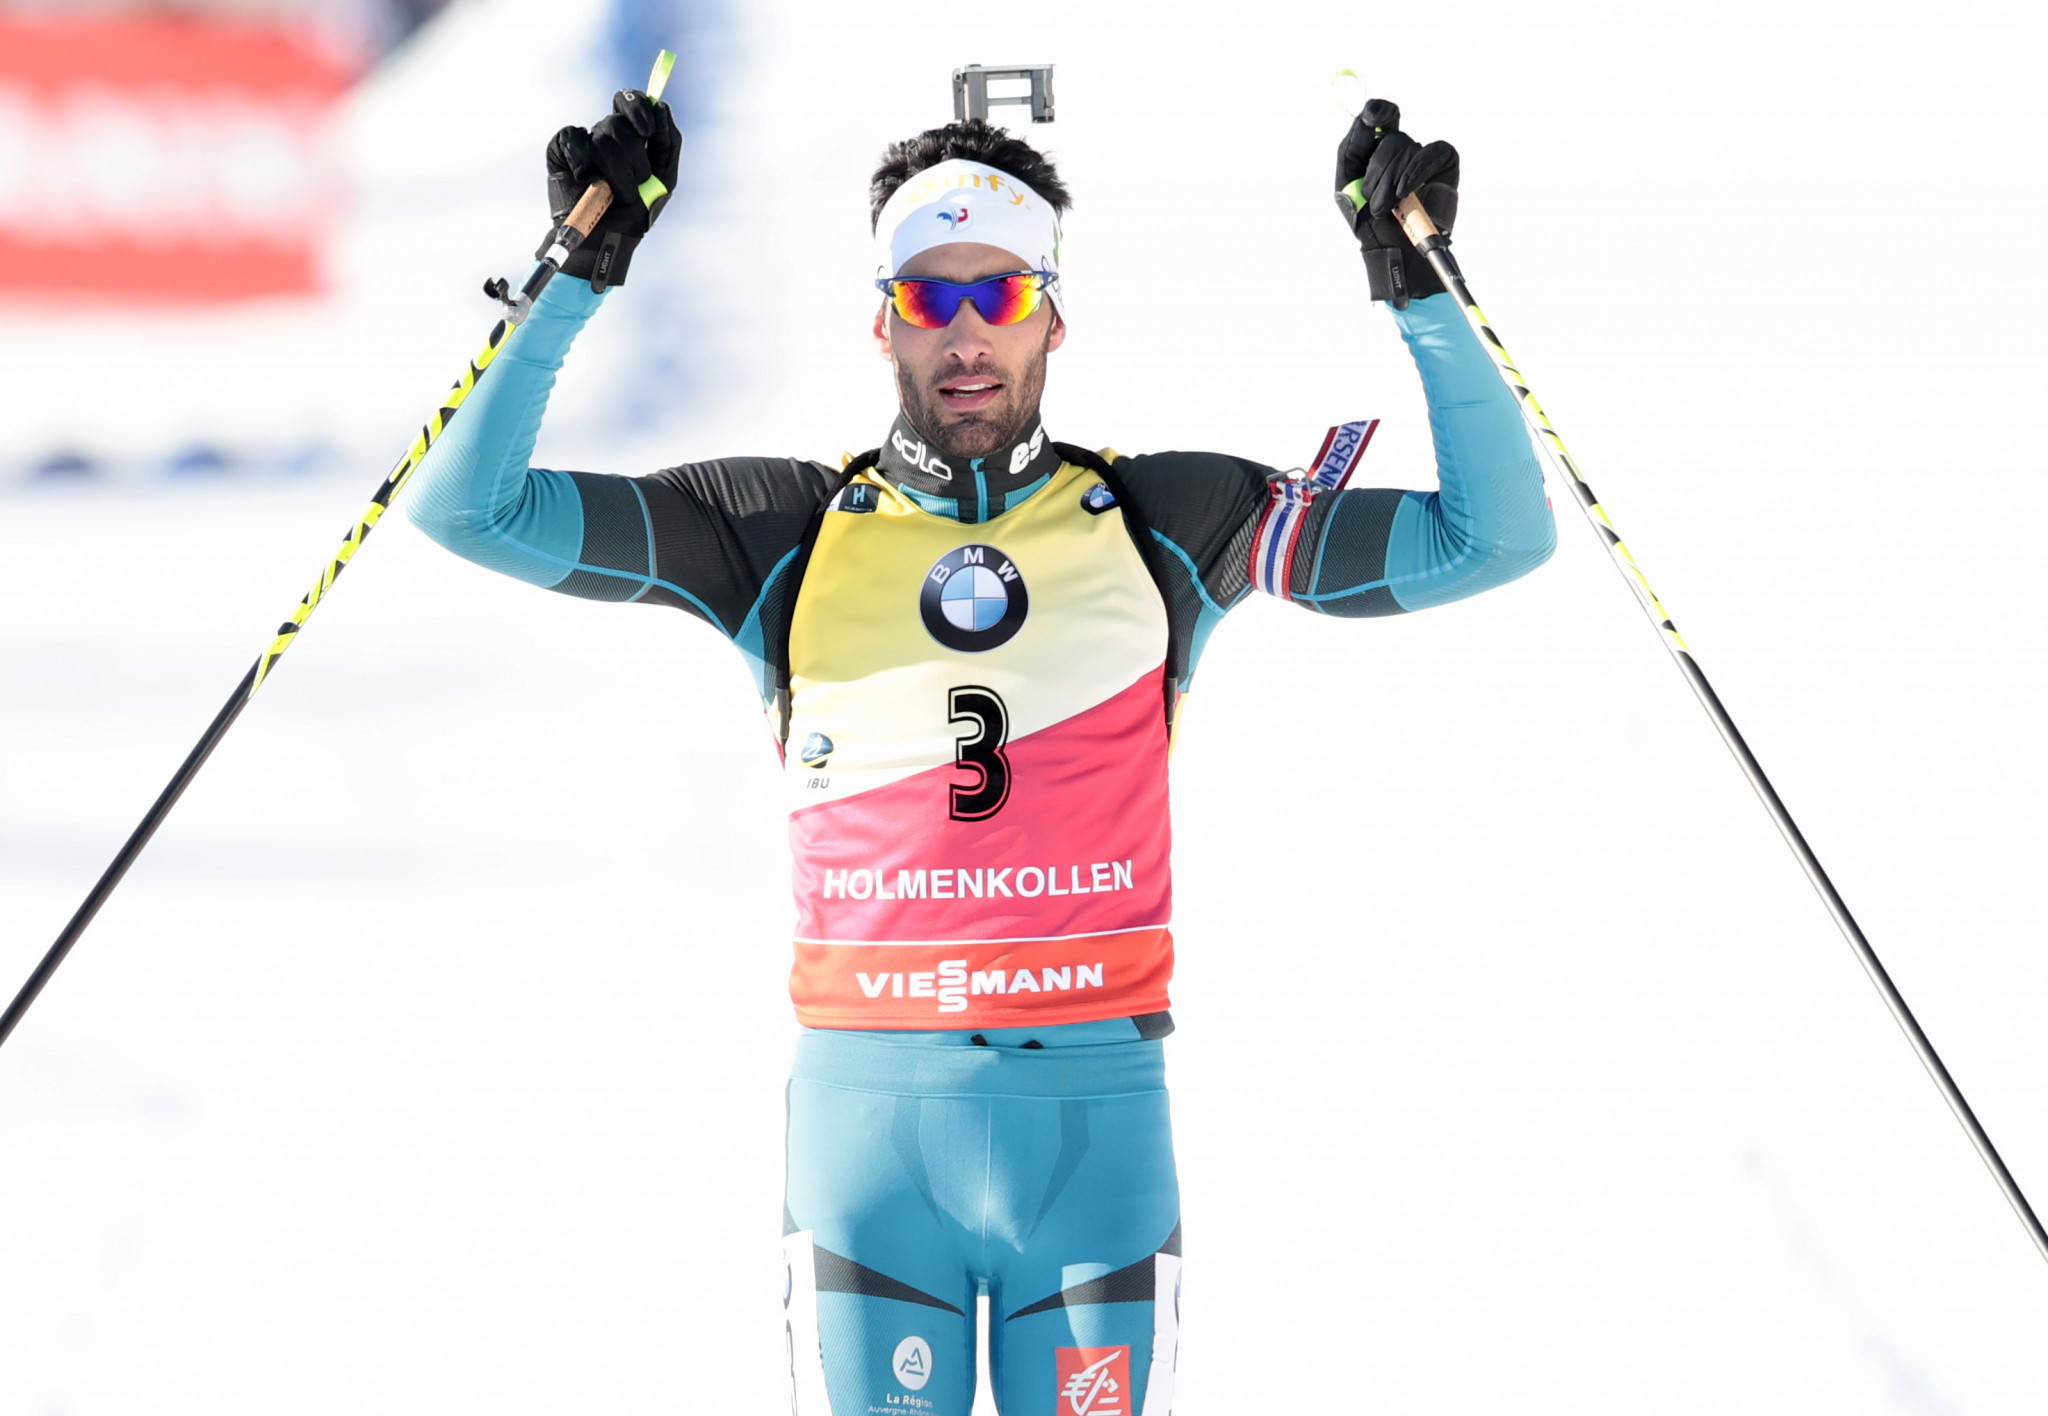 Martin Fourcade, pictured winning in Holmenkollen last week, won the World Cup finals today in Russia ©Getty Images